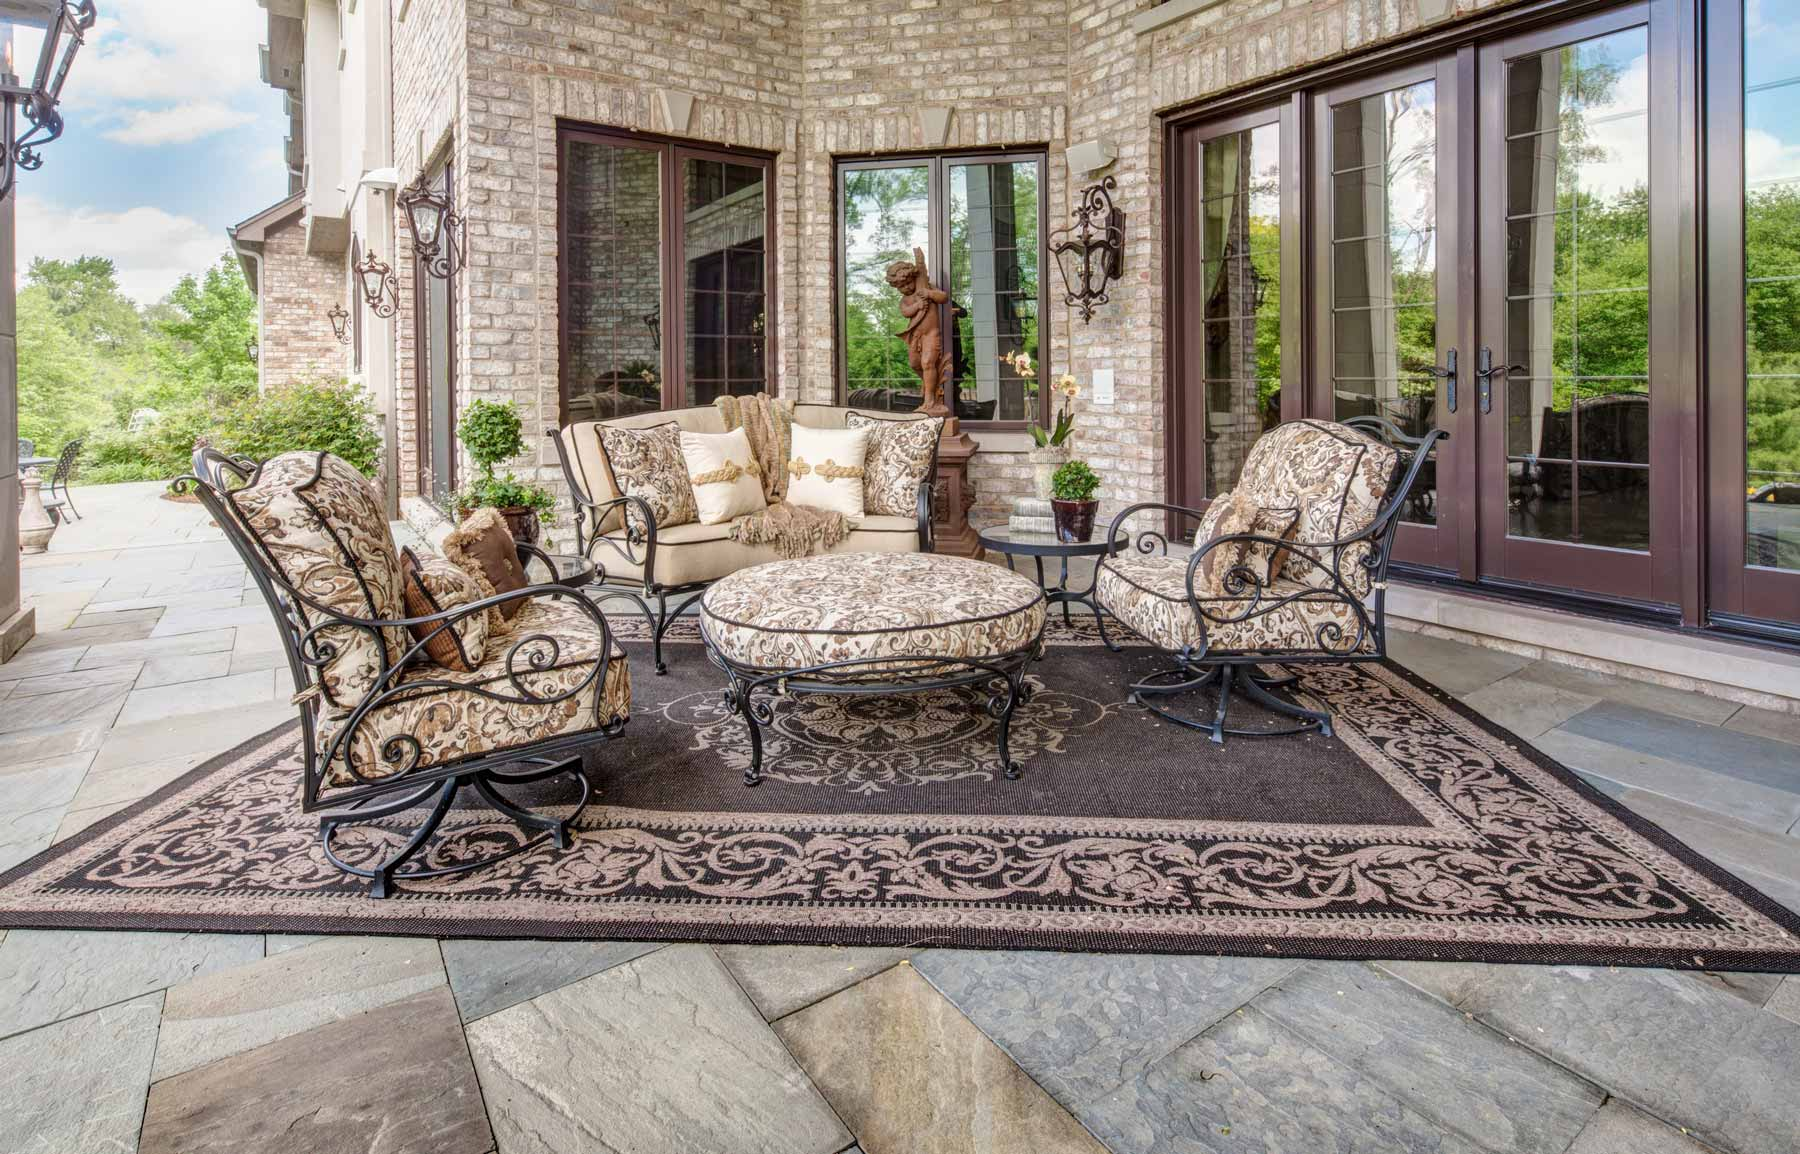 Luxury Outdoor Furniture - Linly Designs on Luxury Backyard Design id=34436